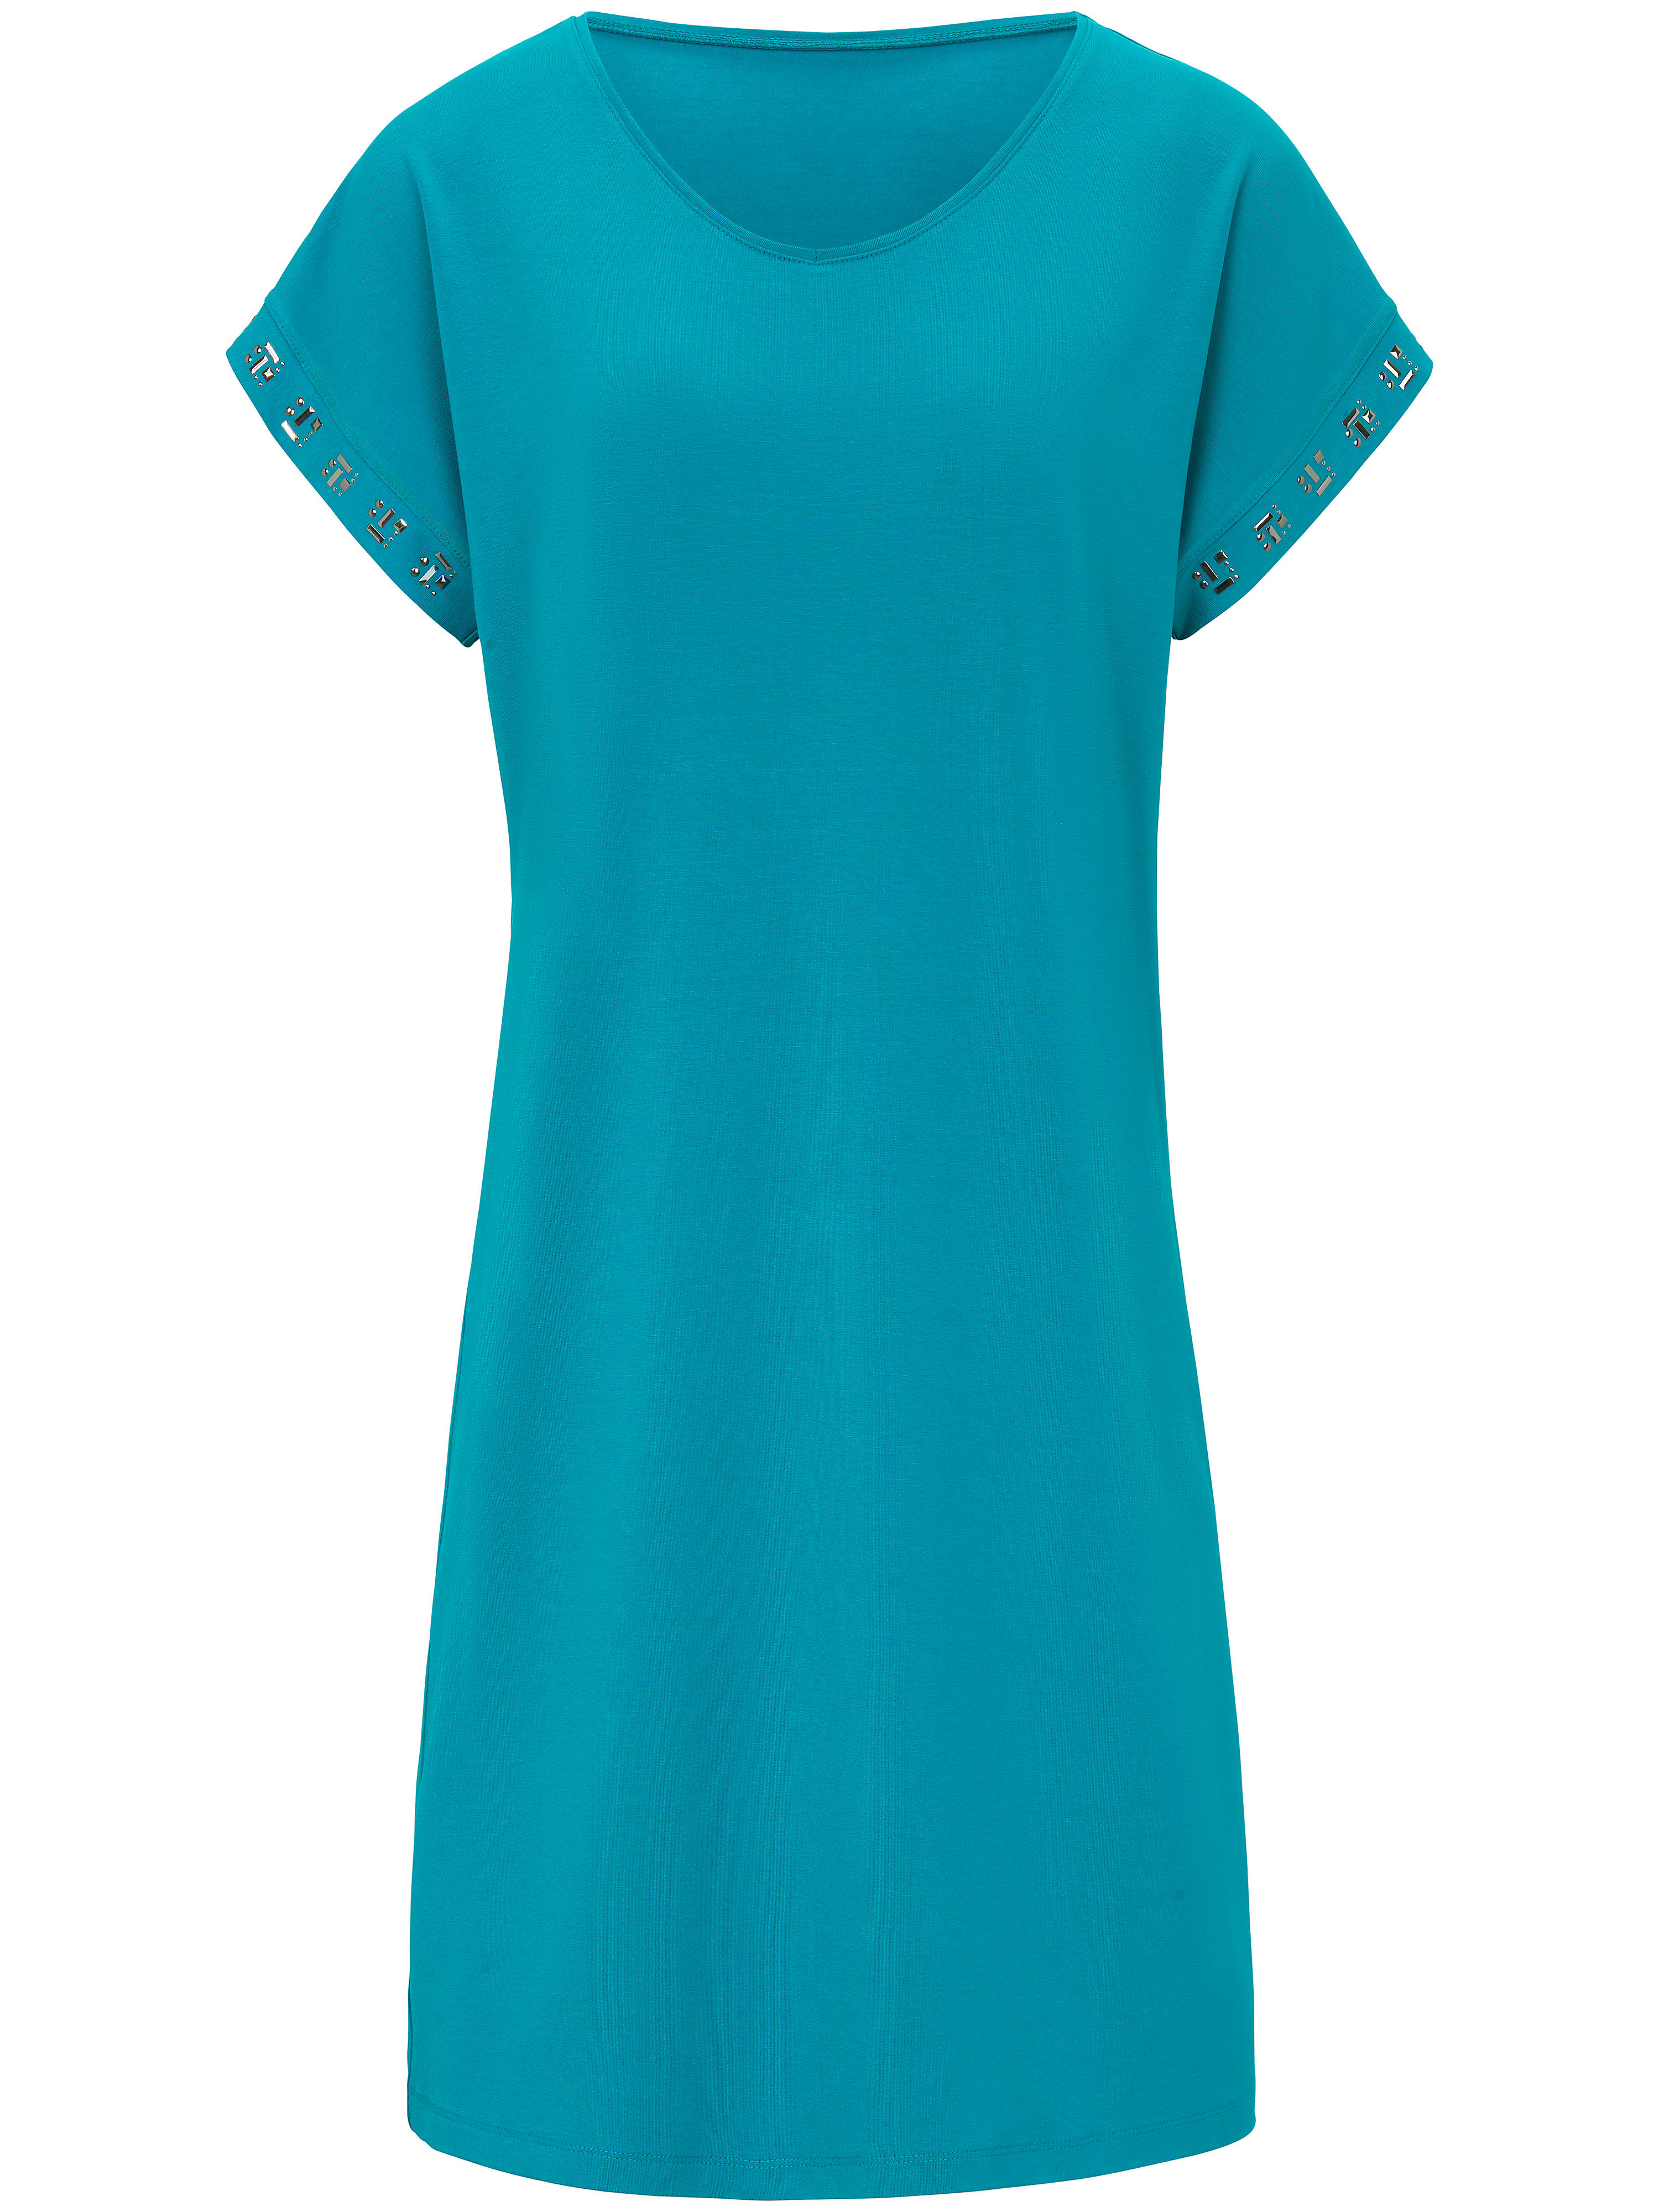 La robe  Peter Hahn turquoise taille 48